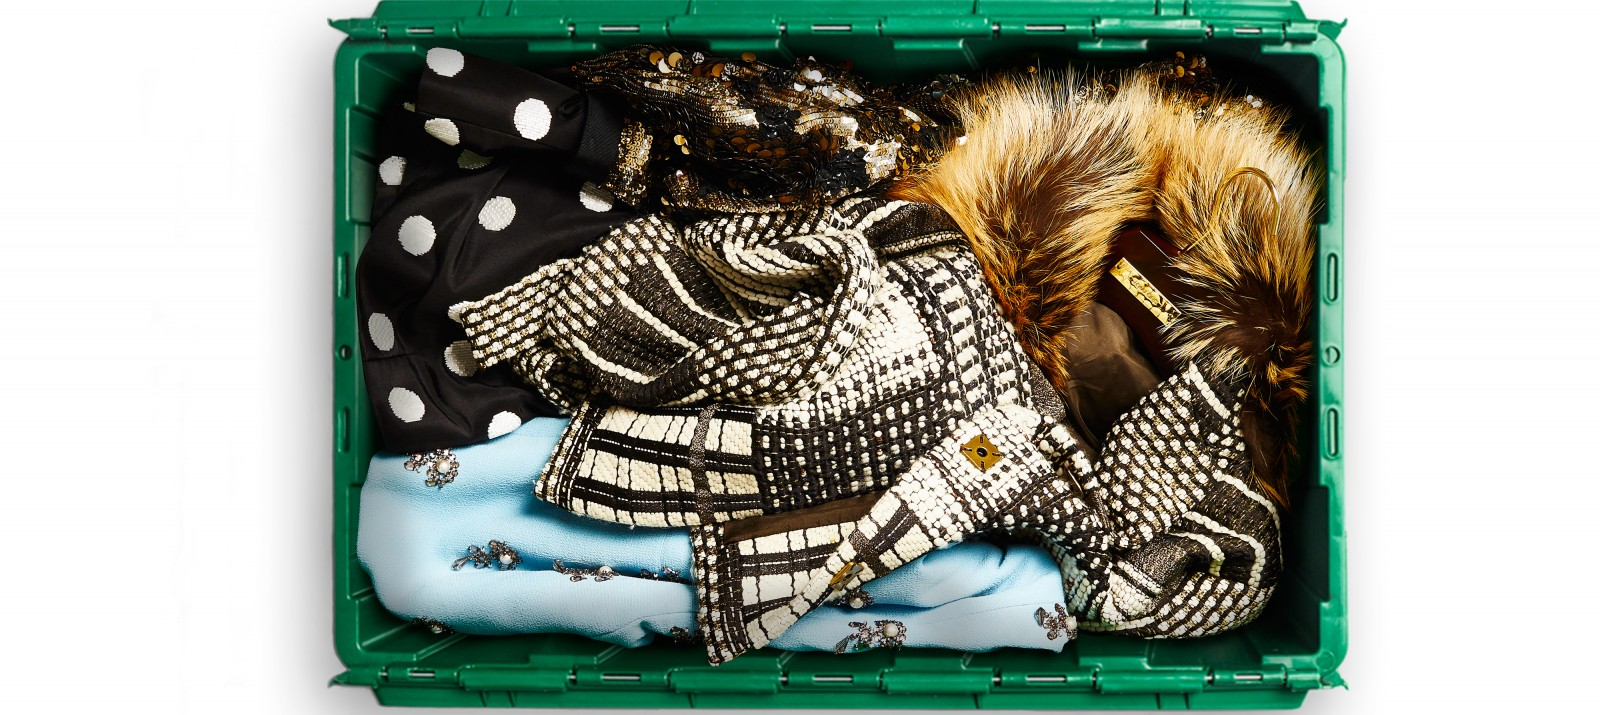 Fashion designer and MONSE co-founder Laura Kim uses MakeSpace for winter clothes storage NYC.